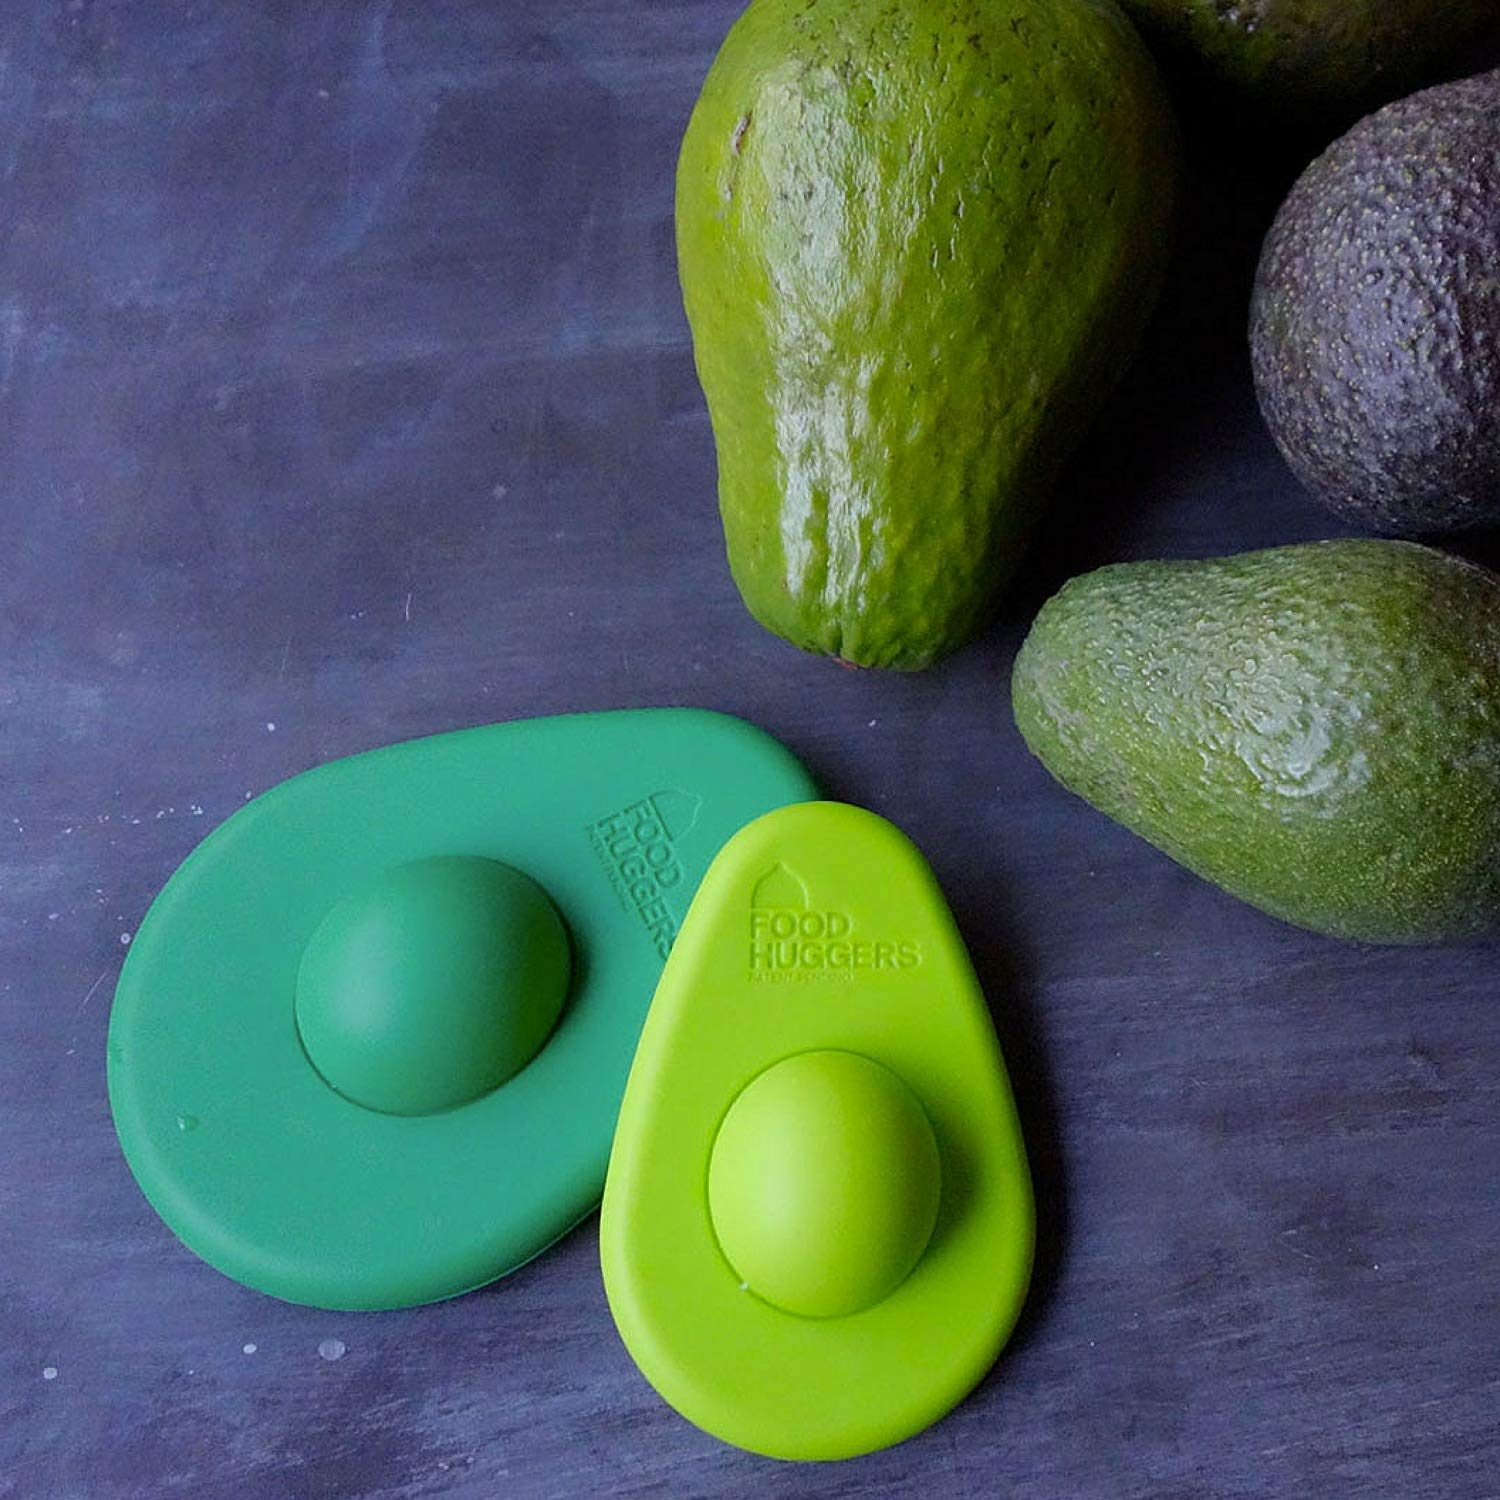 Avocado food huggers